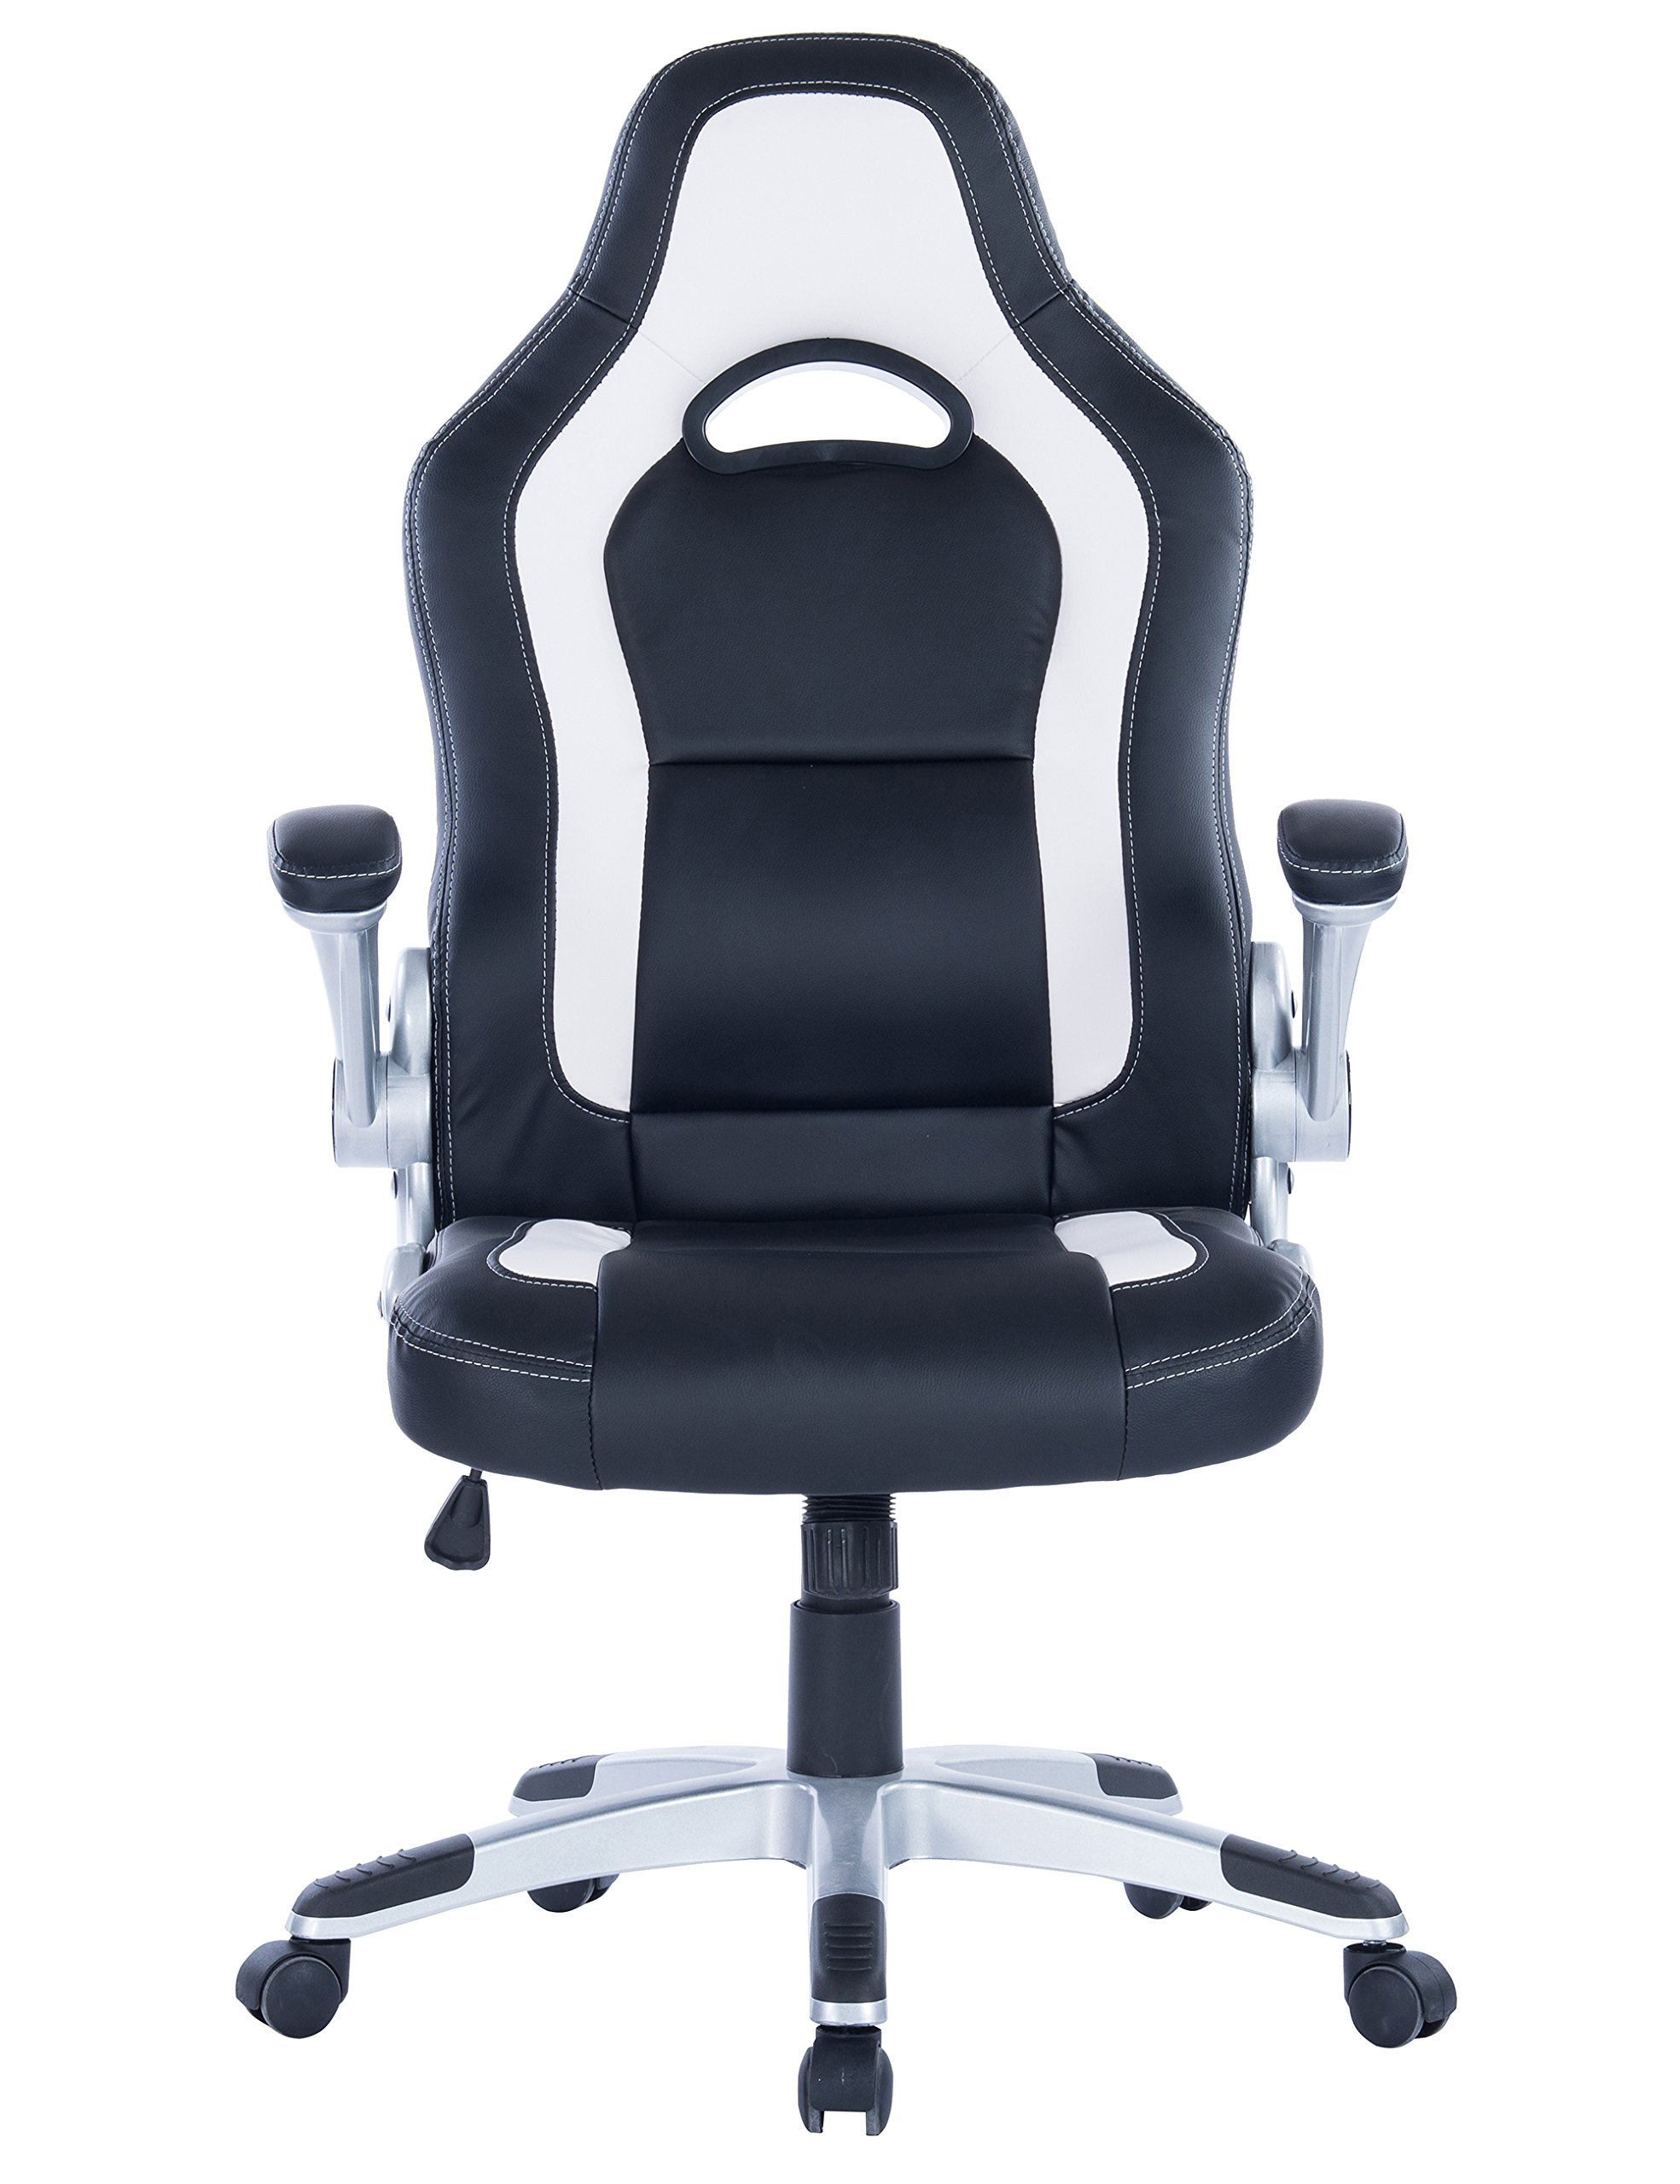 Killbee Ergonomic Swivel Executive Office Gaming Adjustable Chair, High-Back Upholstered PU Leather Desk Chair by Killbee